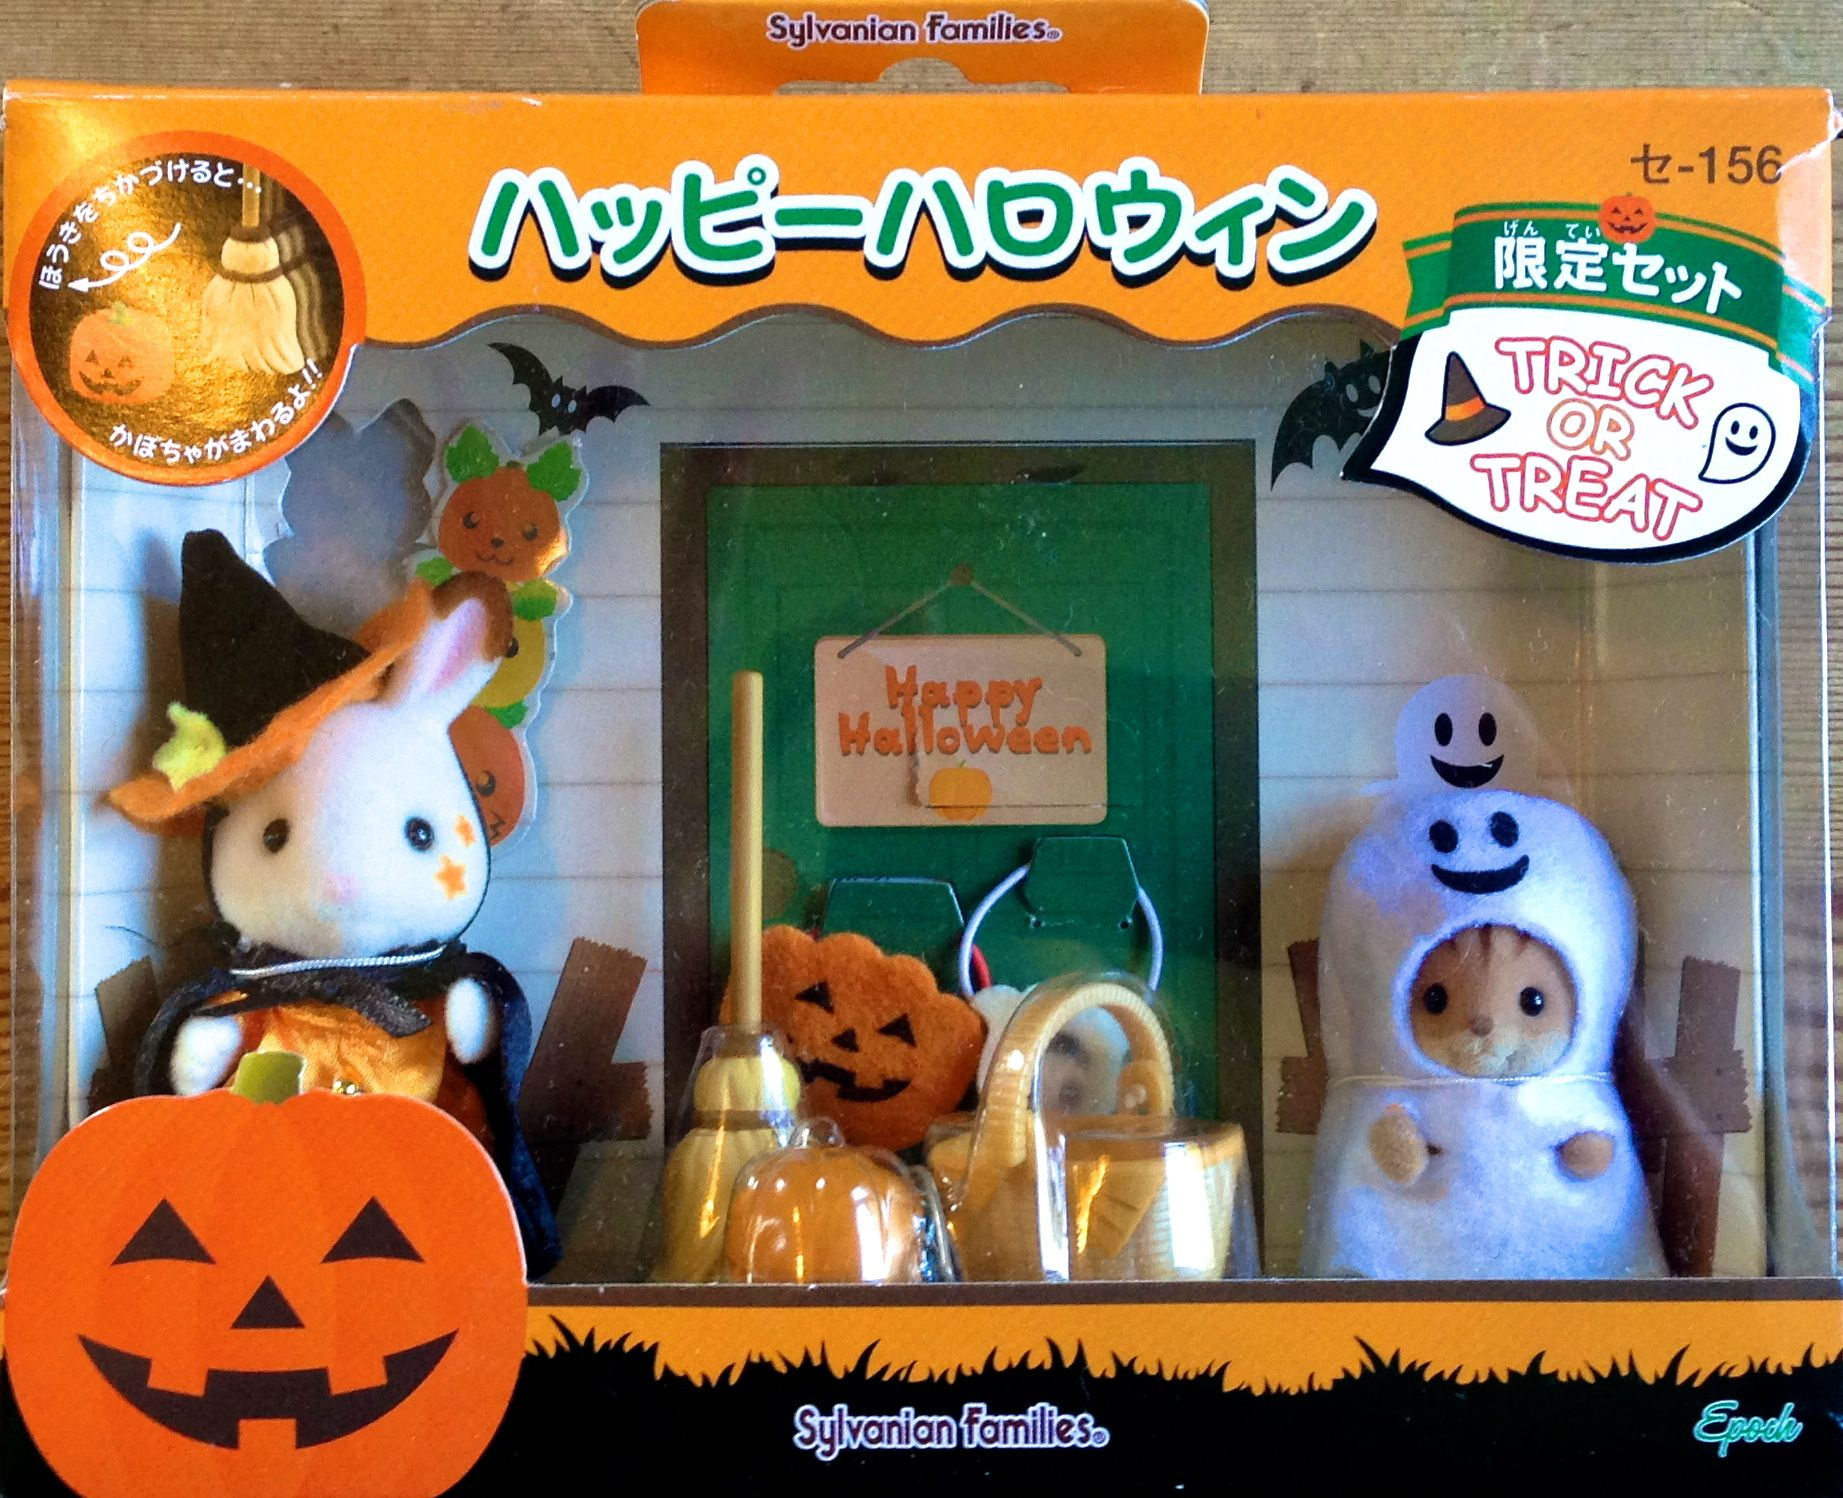 Halloween Costume Dogs Set of 3 small Figurines Adorable Trick or Treat Display